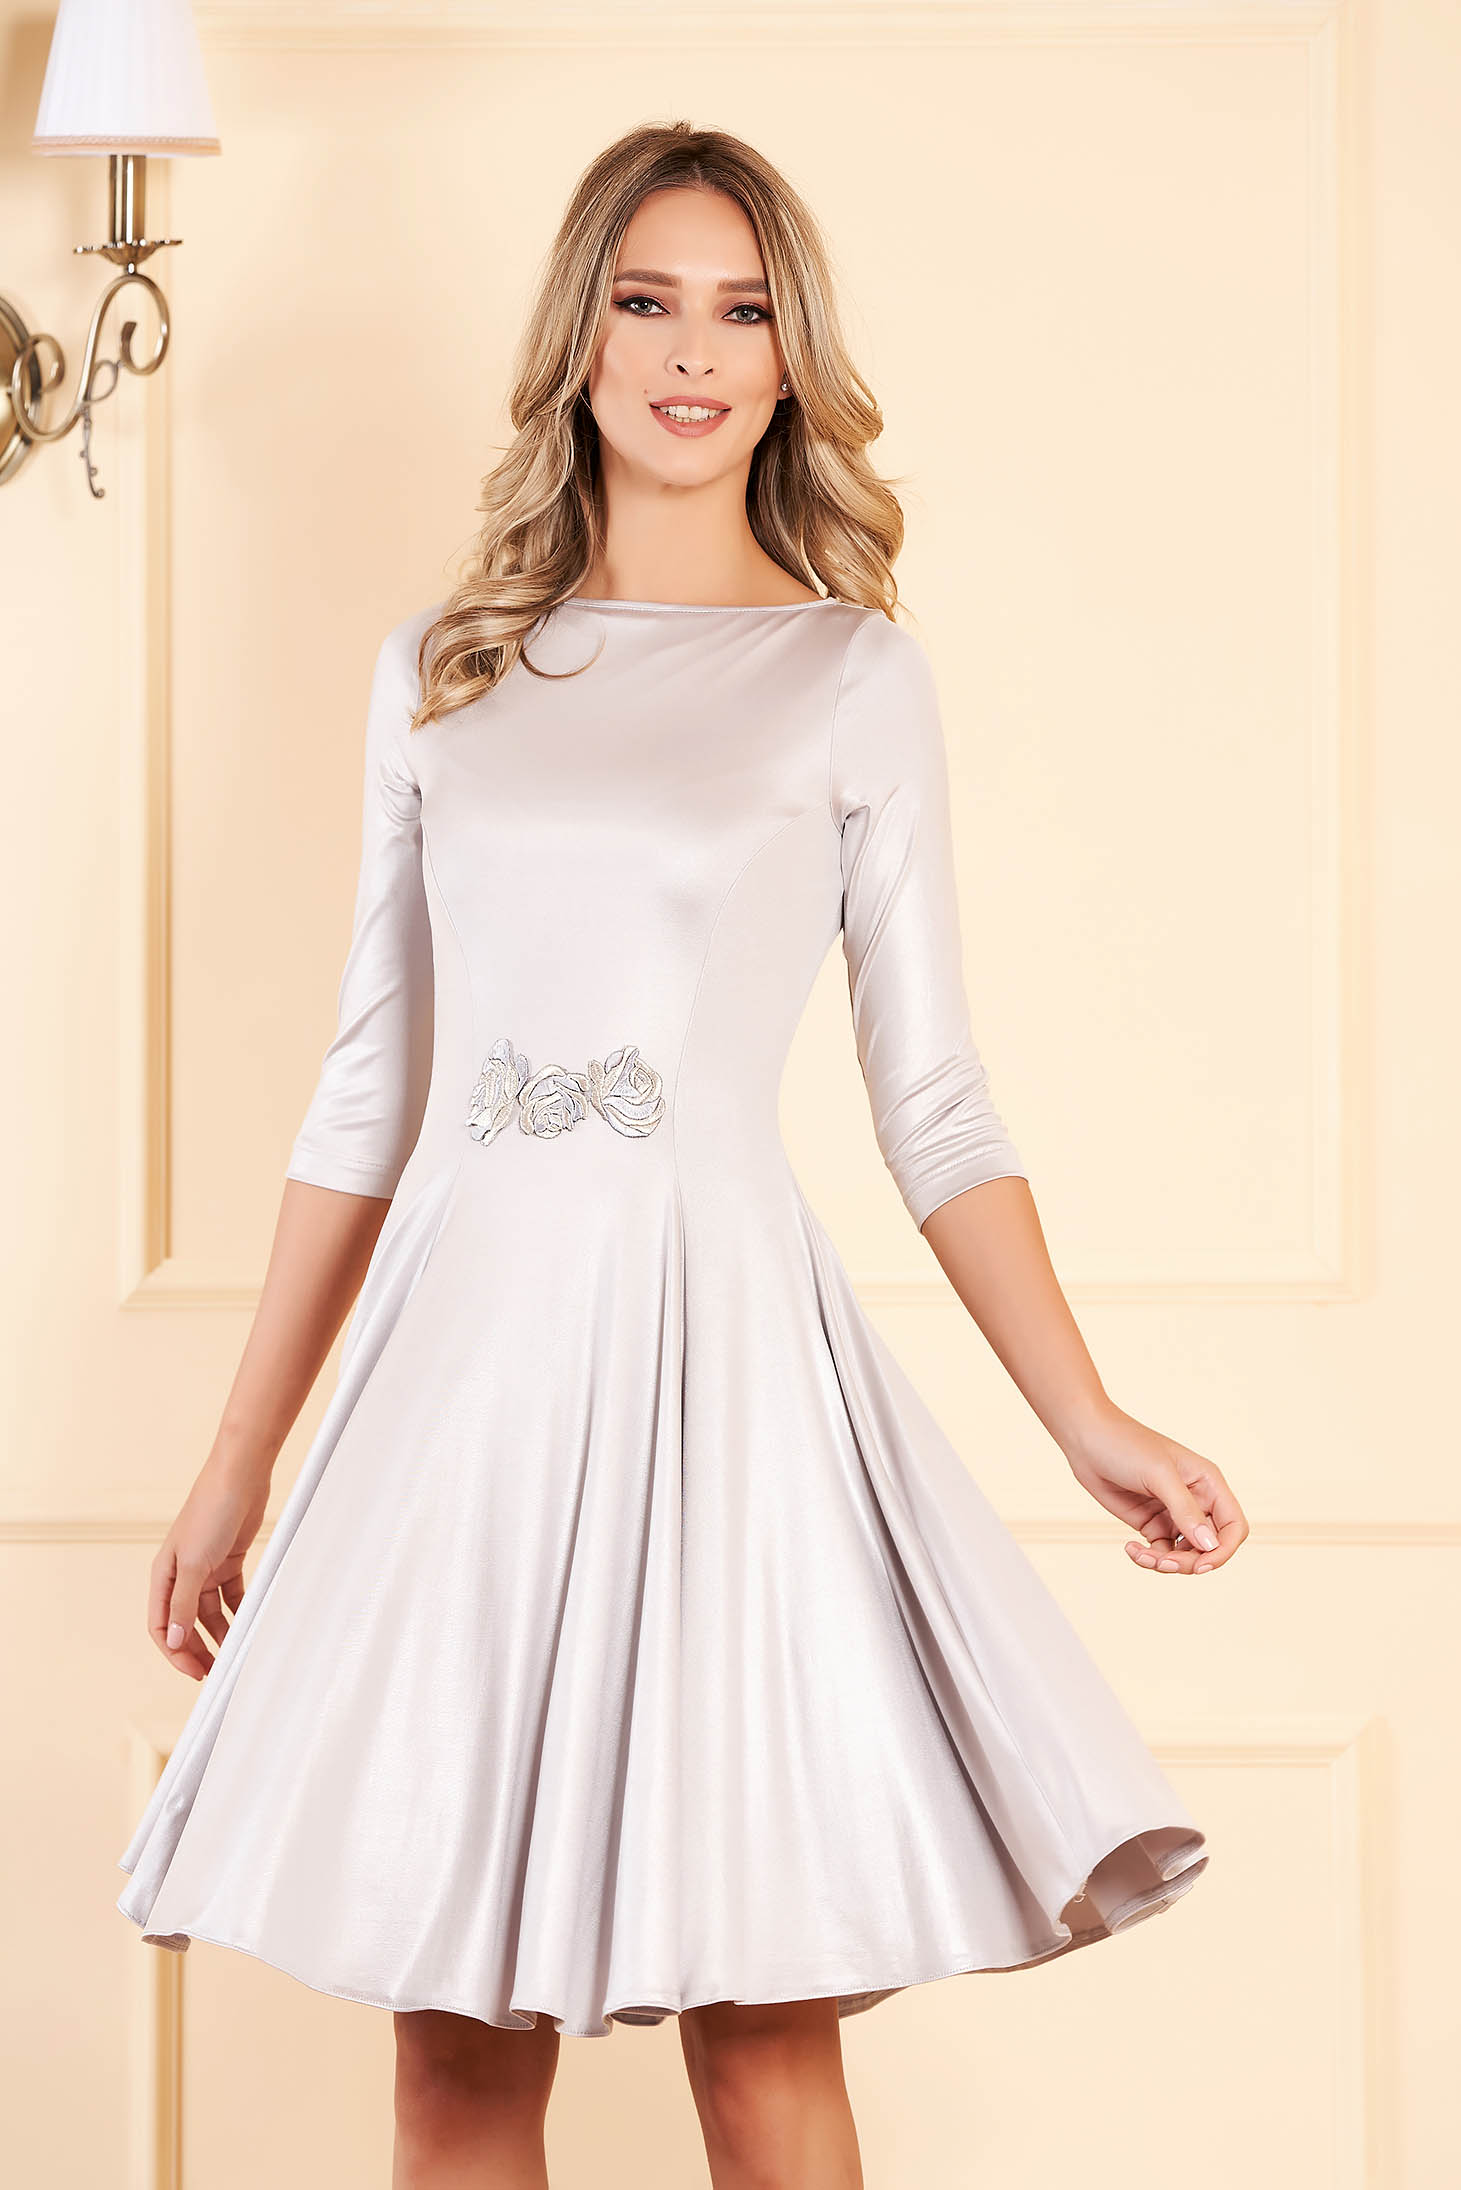 StarShinerS silver occasional dress flaring cut from shiny fabric front embroidery